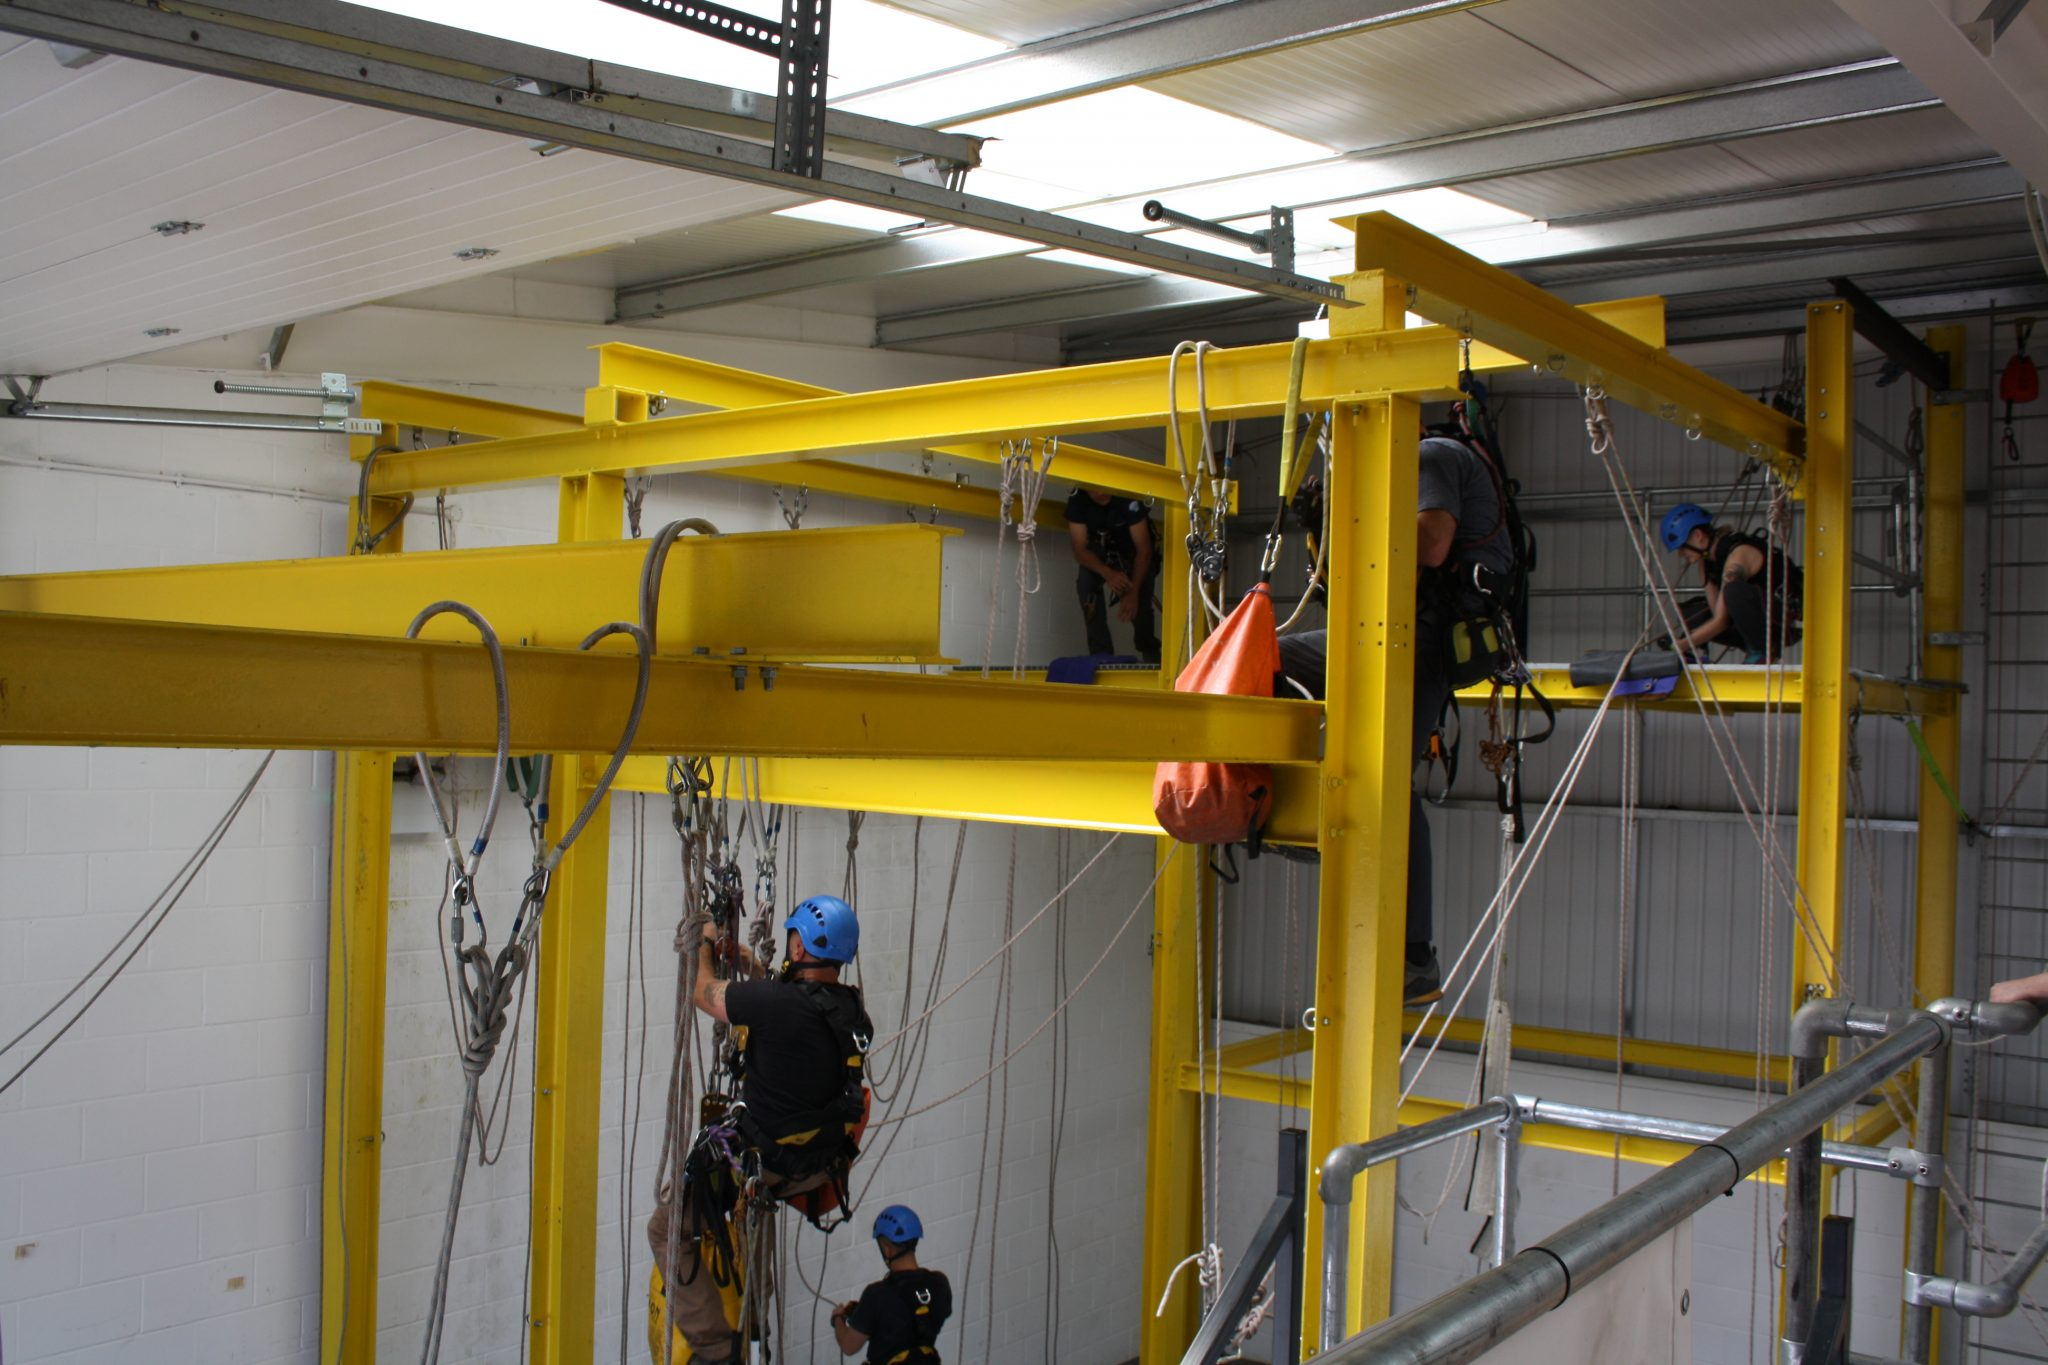 Do my employees need rope access training?